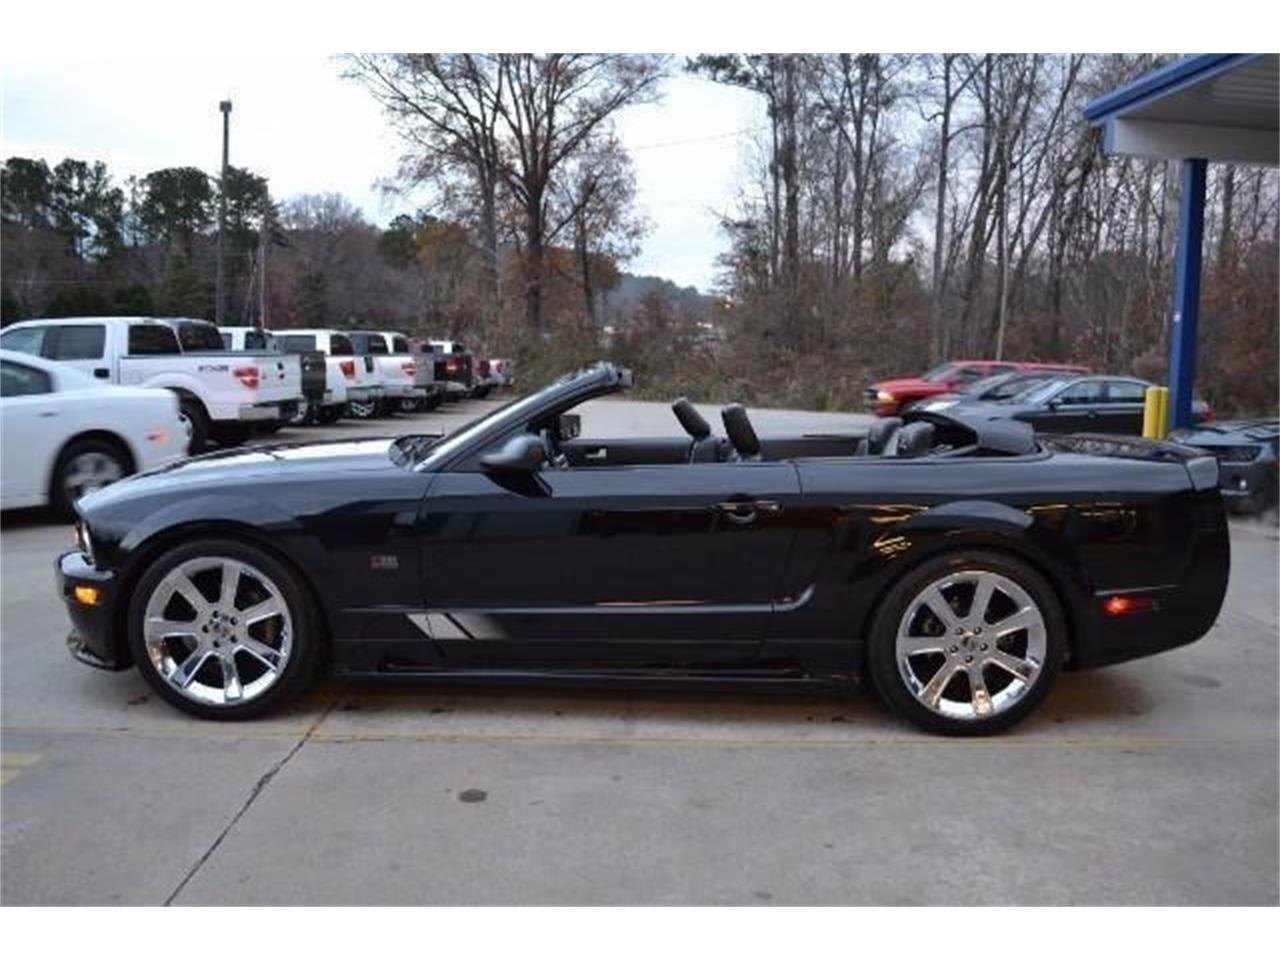 Mankato Car Dealers >> 2006 Ford Mustang Saleen S281 Supercharged Convertible for ...